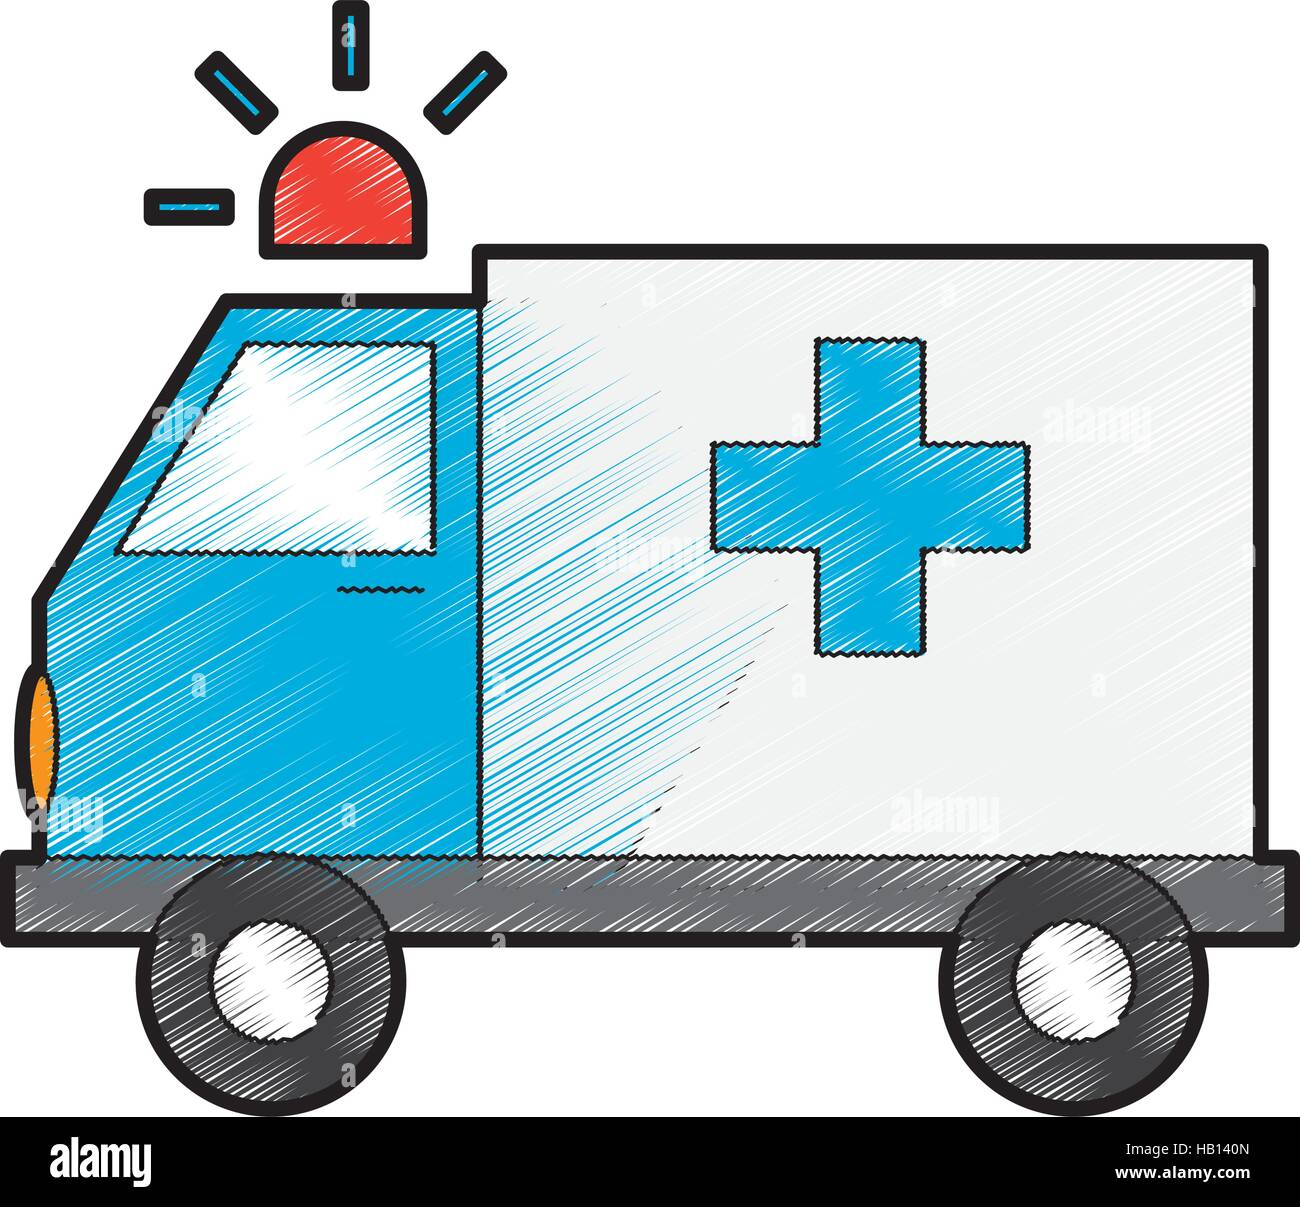 ambulance vehicle icon over white background. draw and sketch design ...